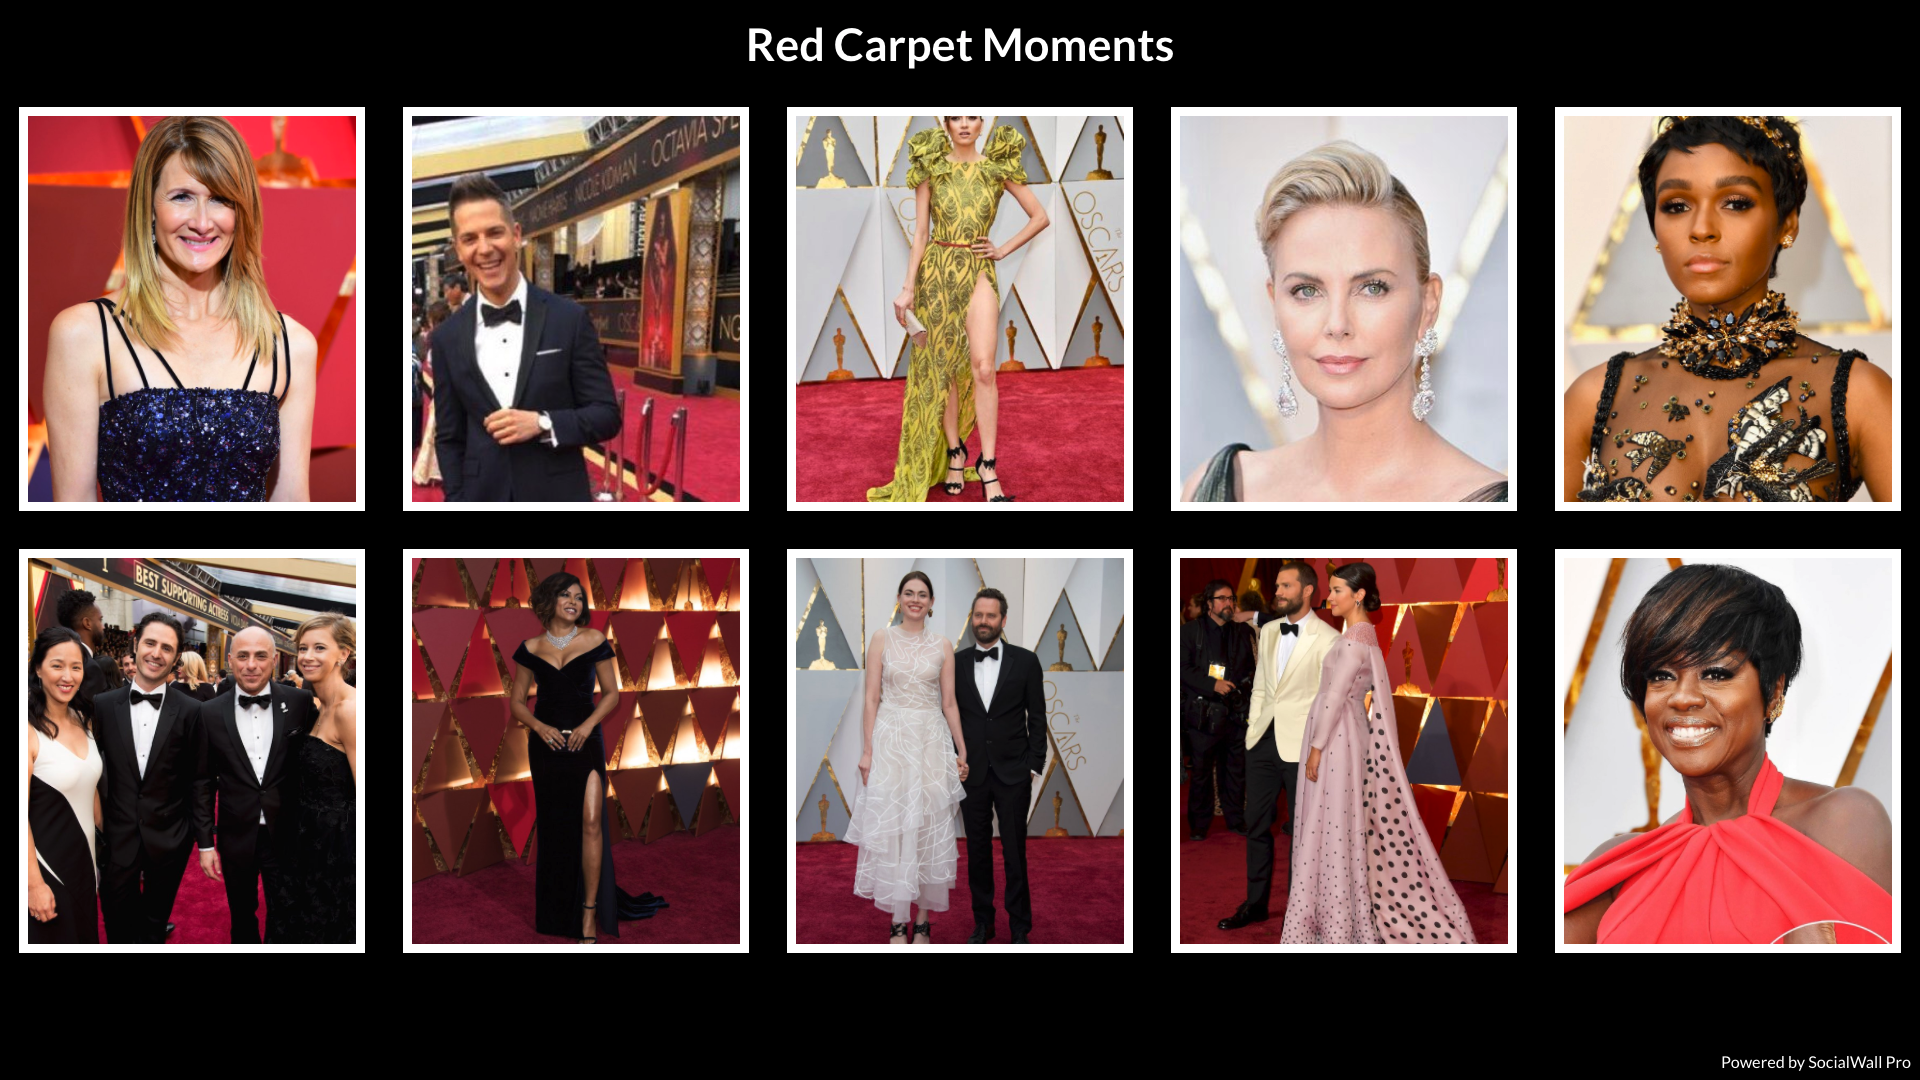 Photo Grid of Red Carpet moments from the Oscars